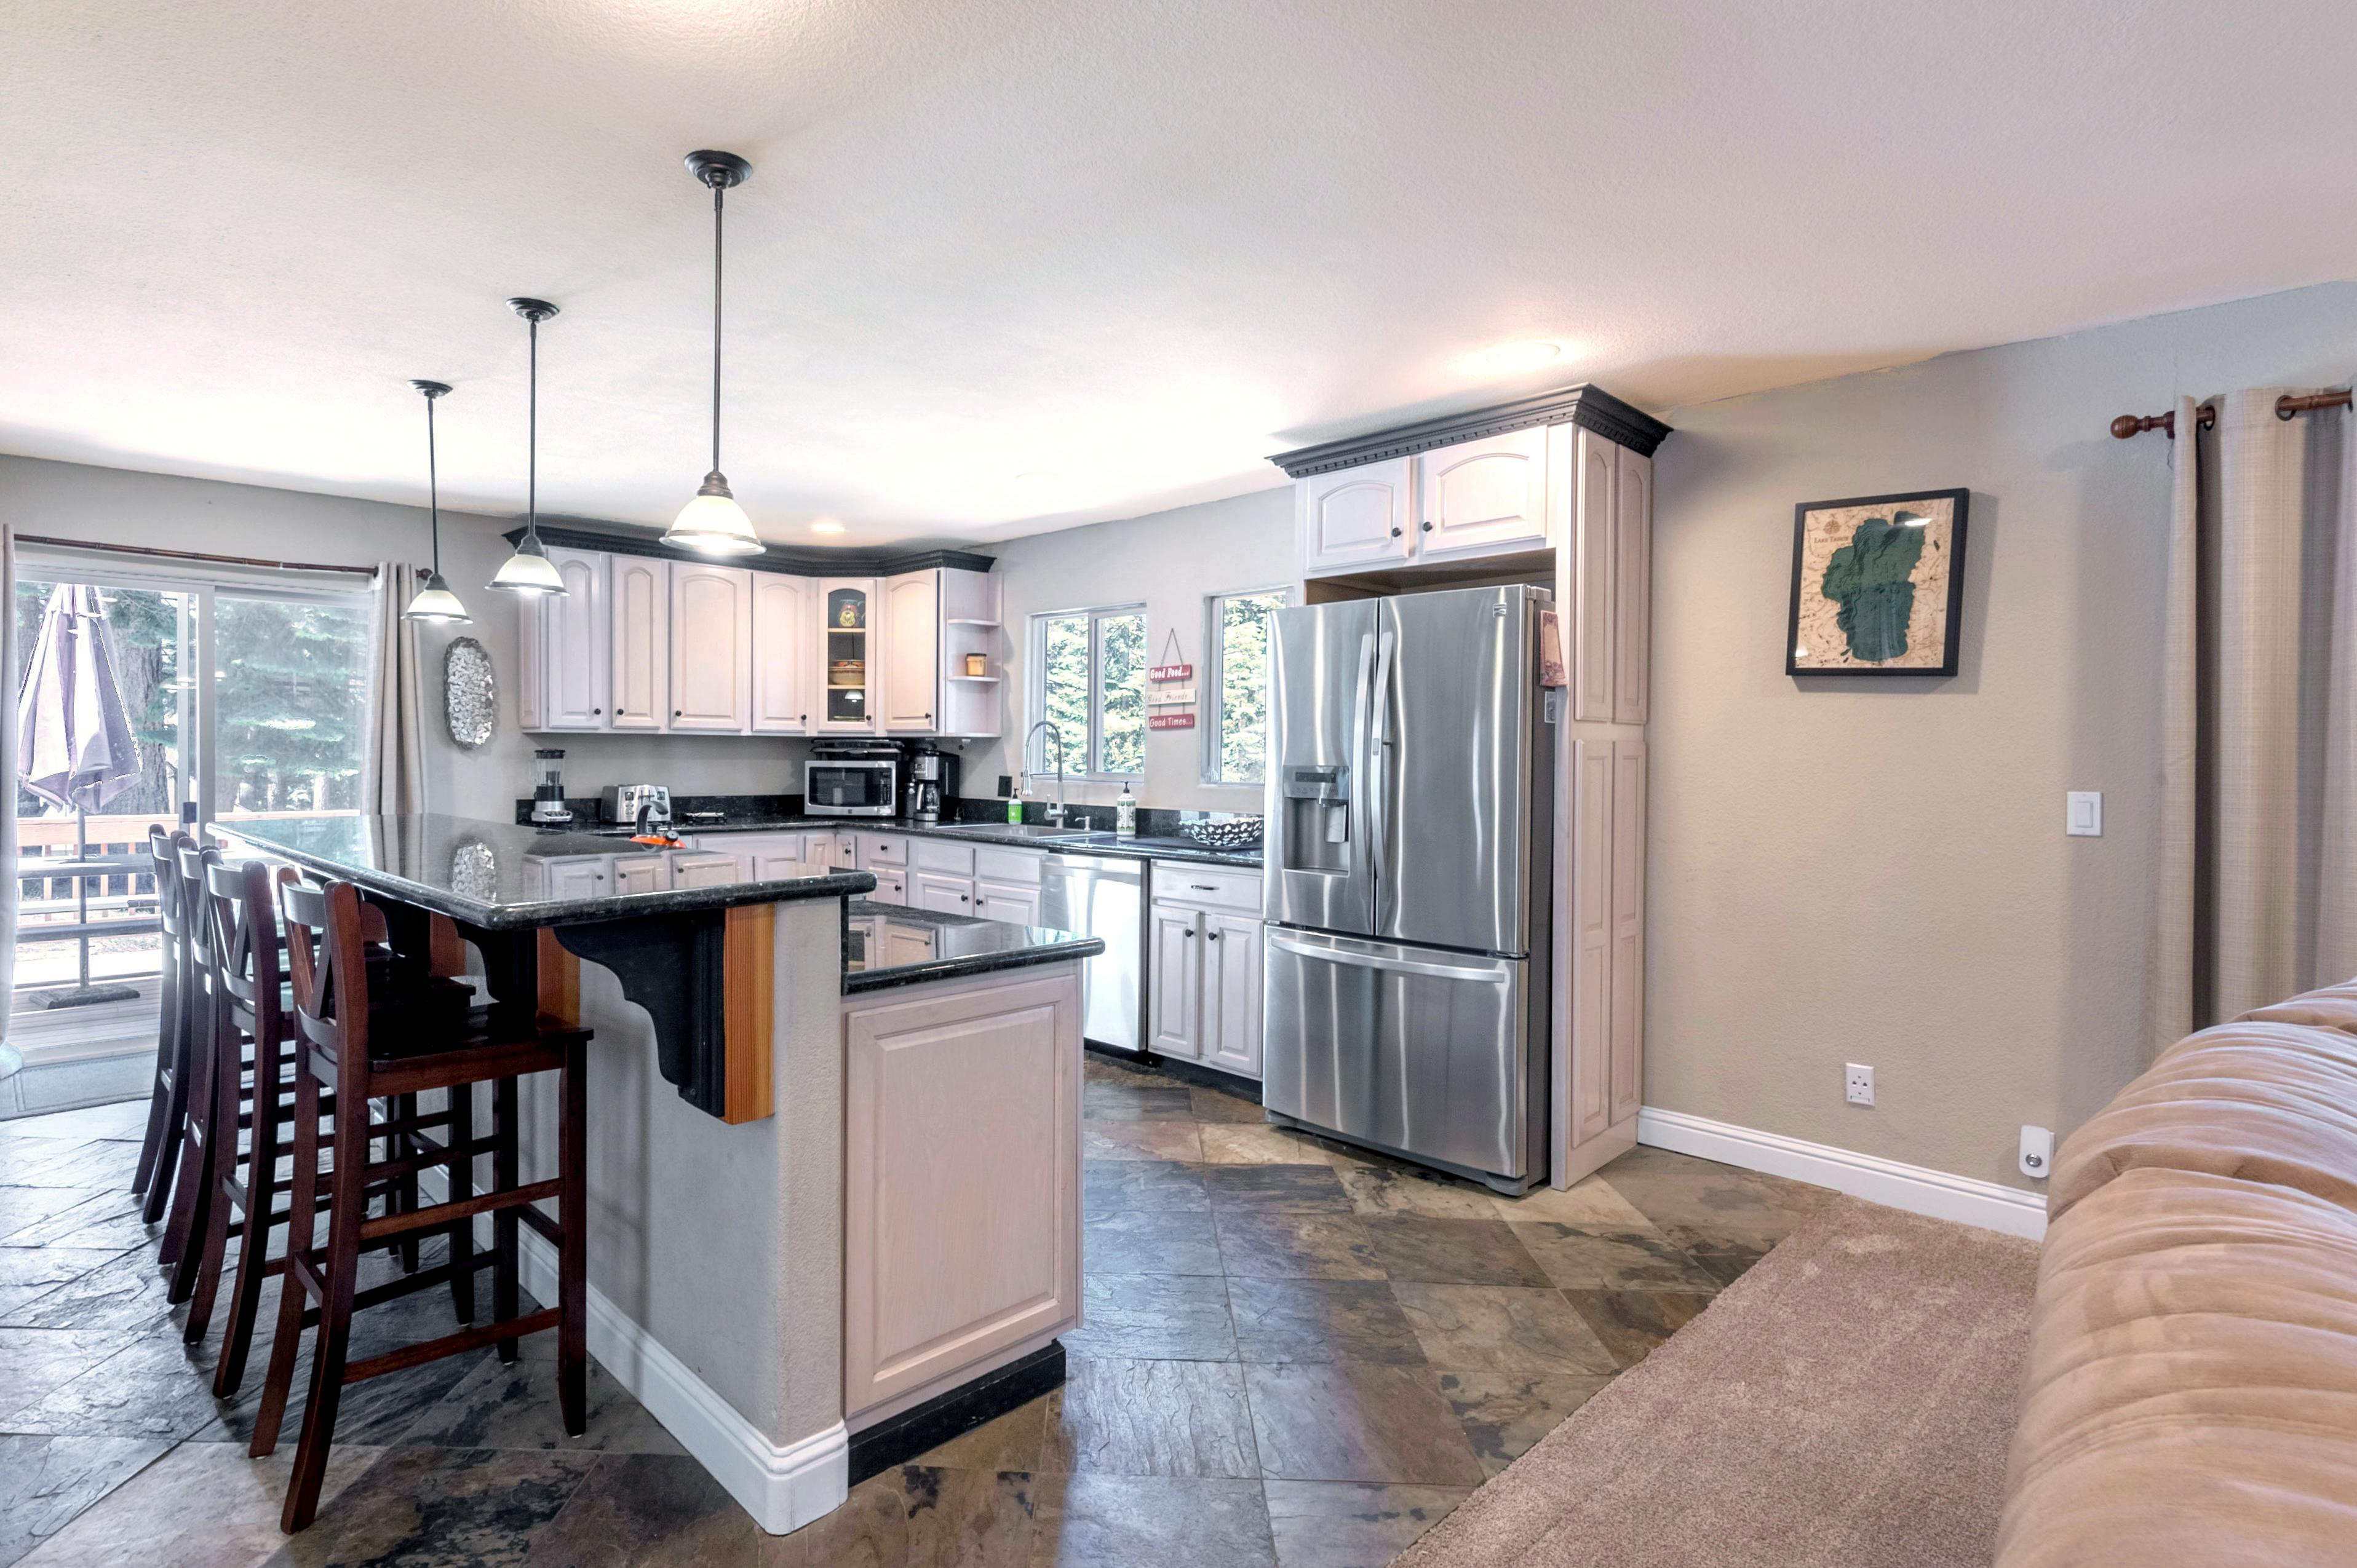 The sunny kitchen is outfitted with a full suite of stainless steel appliances and granite countertops.